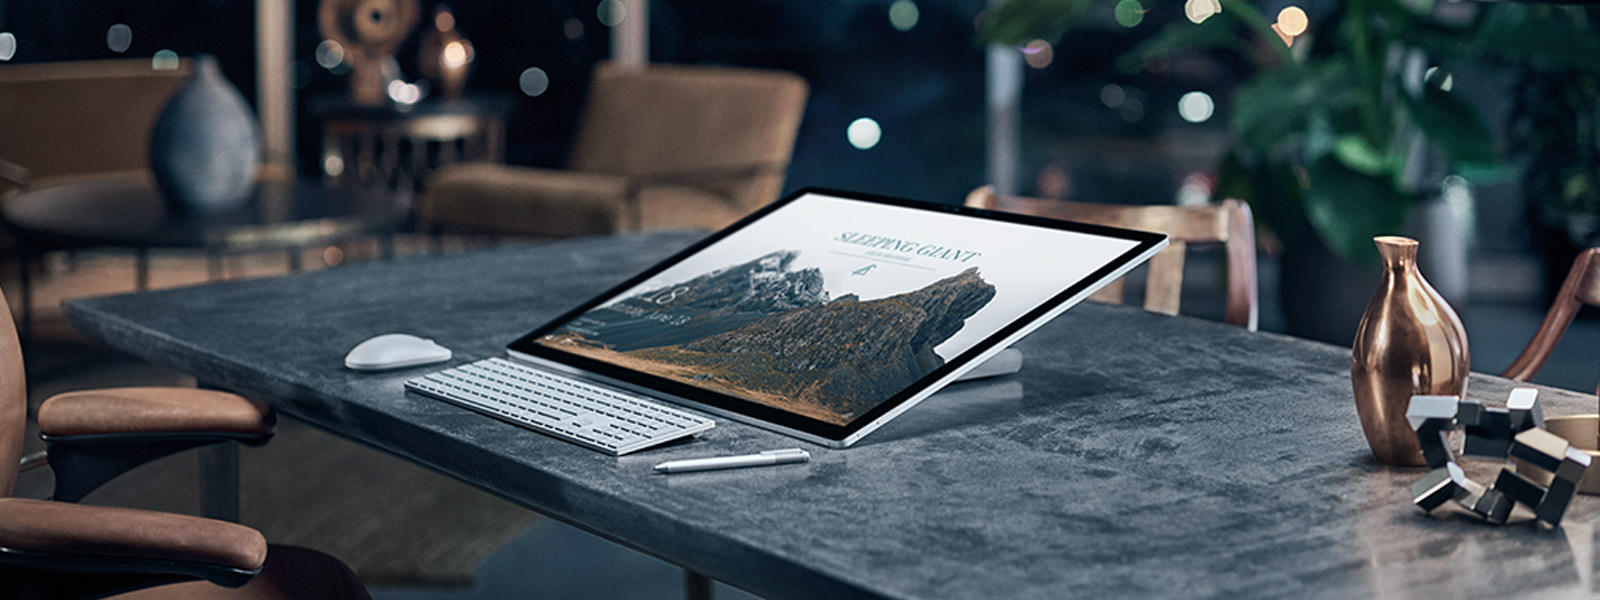 Surface Studio TechSpecs 9 VideoPanel V1 image